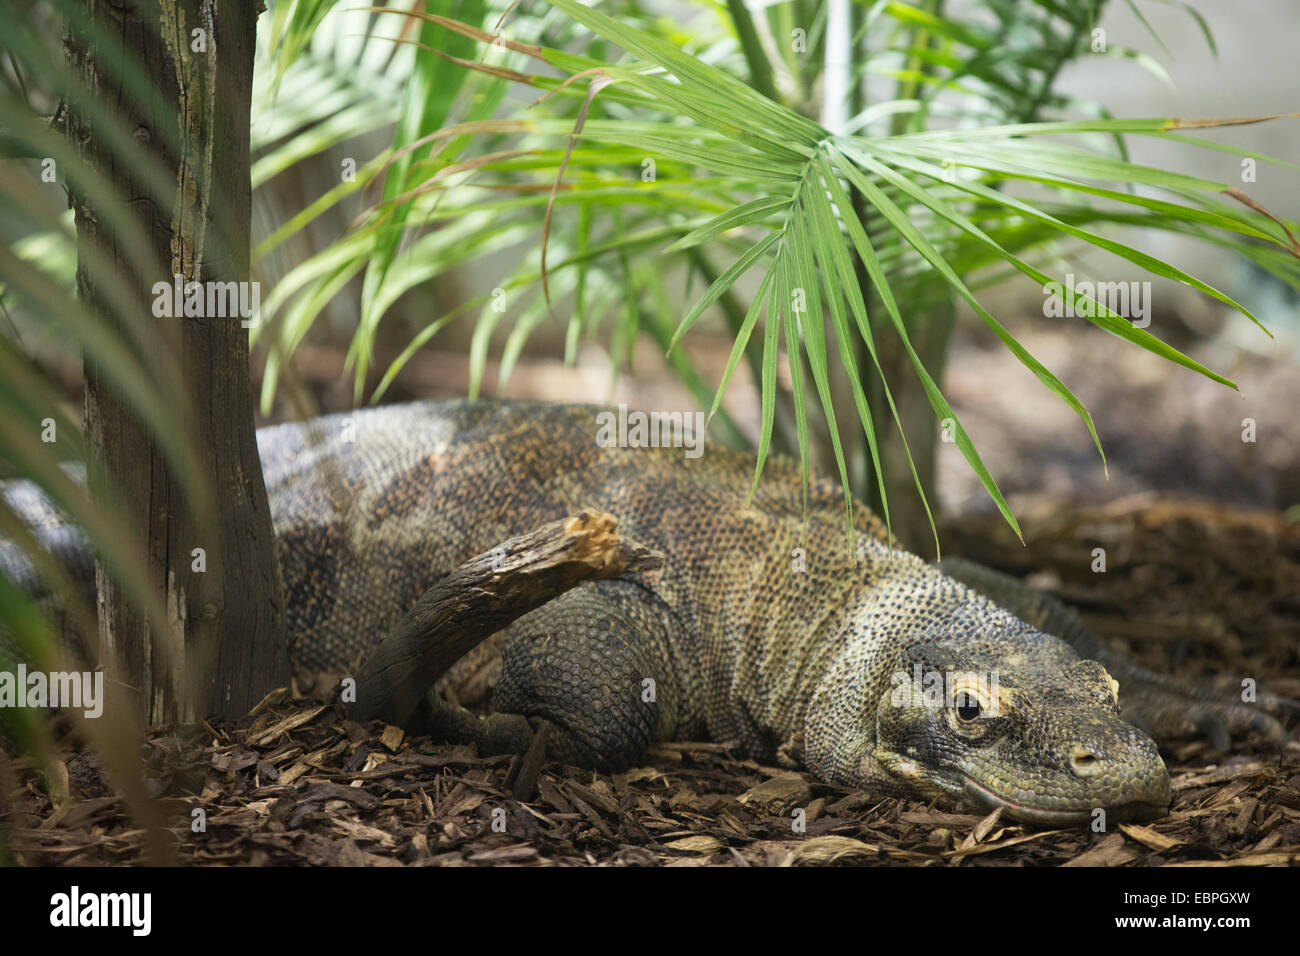 Female Komodo dragon (Varanus komodoensis) in Eurasian exhibit - Stock Image